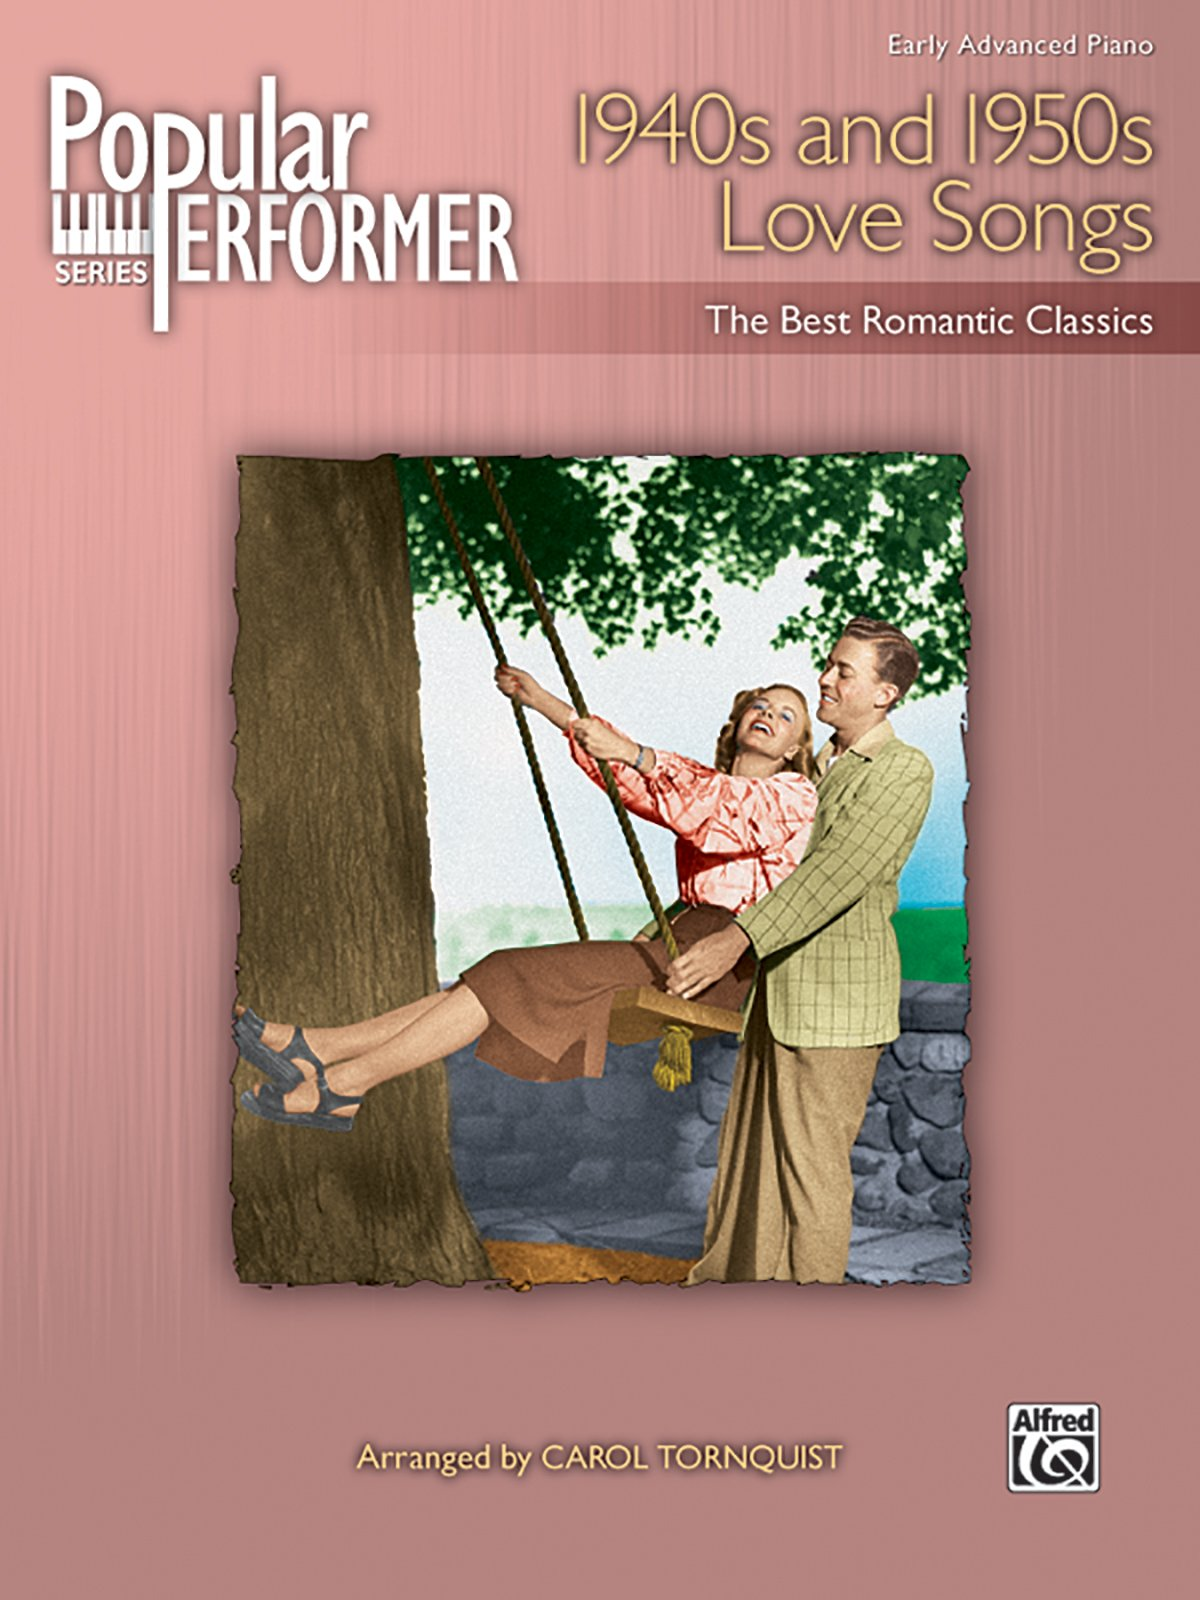 Popular Performer -- 1940s and 1950s Love Songs: The Best Romantic Classics (Popular Performer Series) PDF